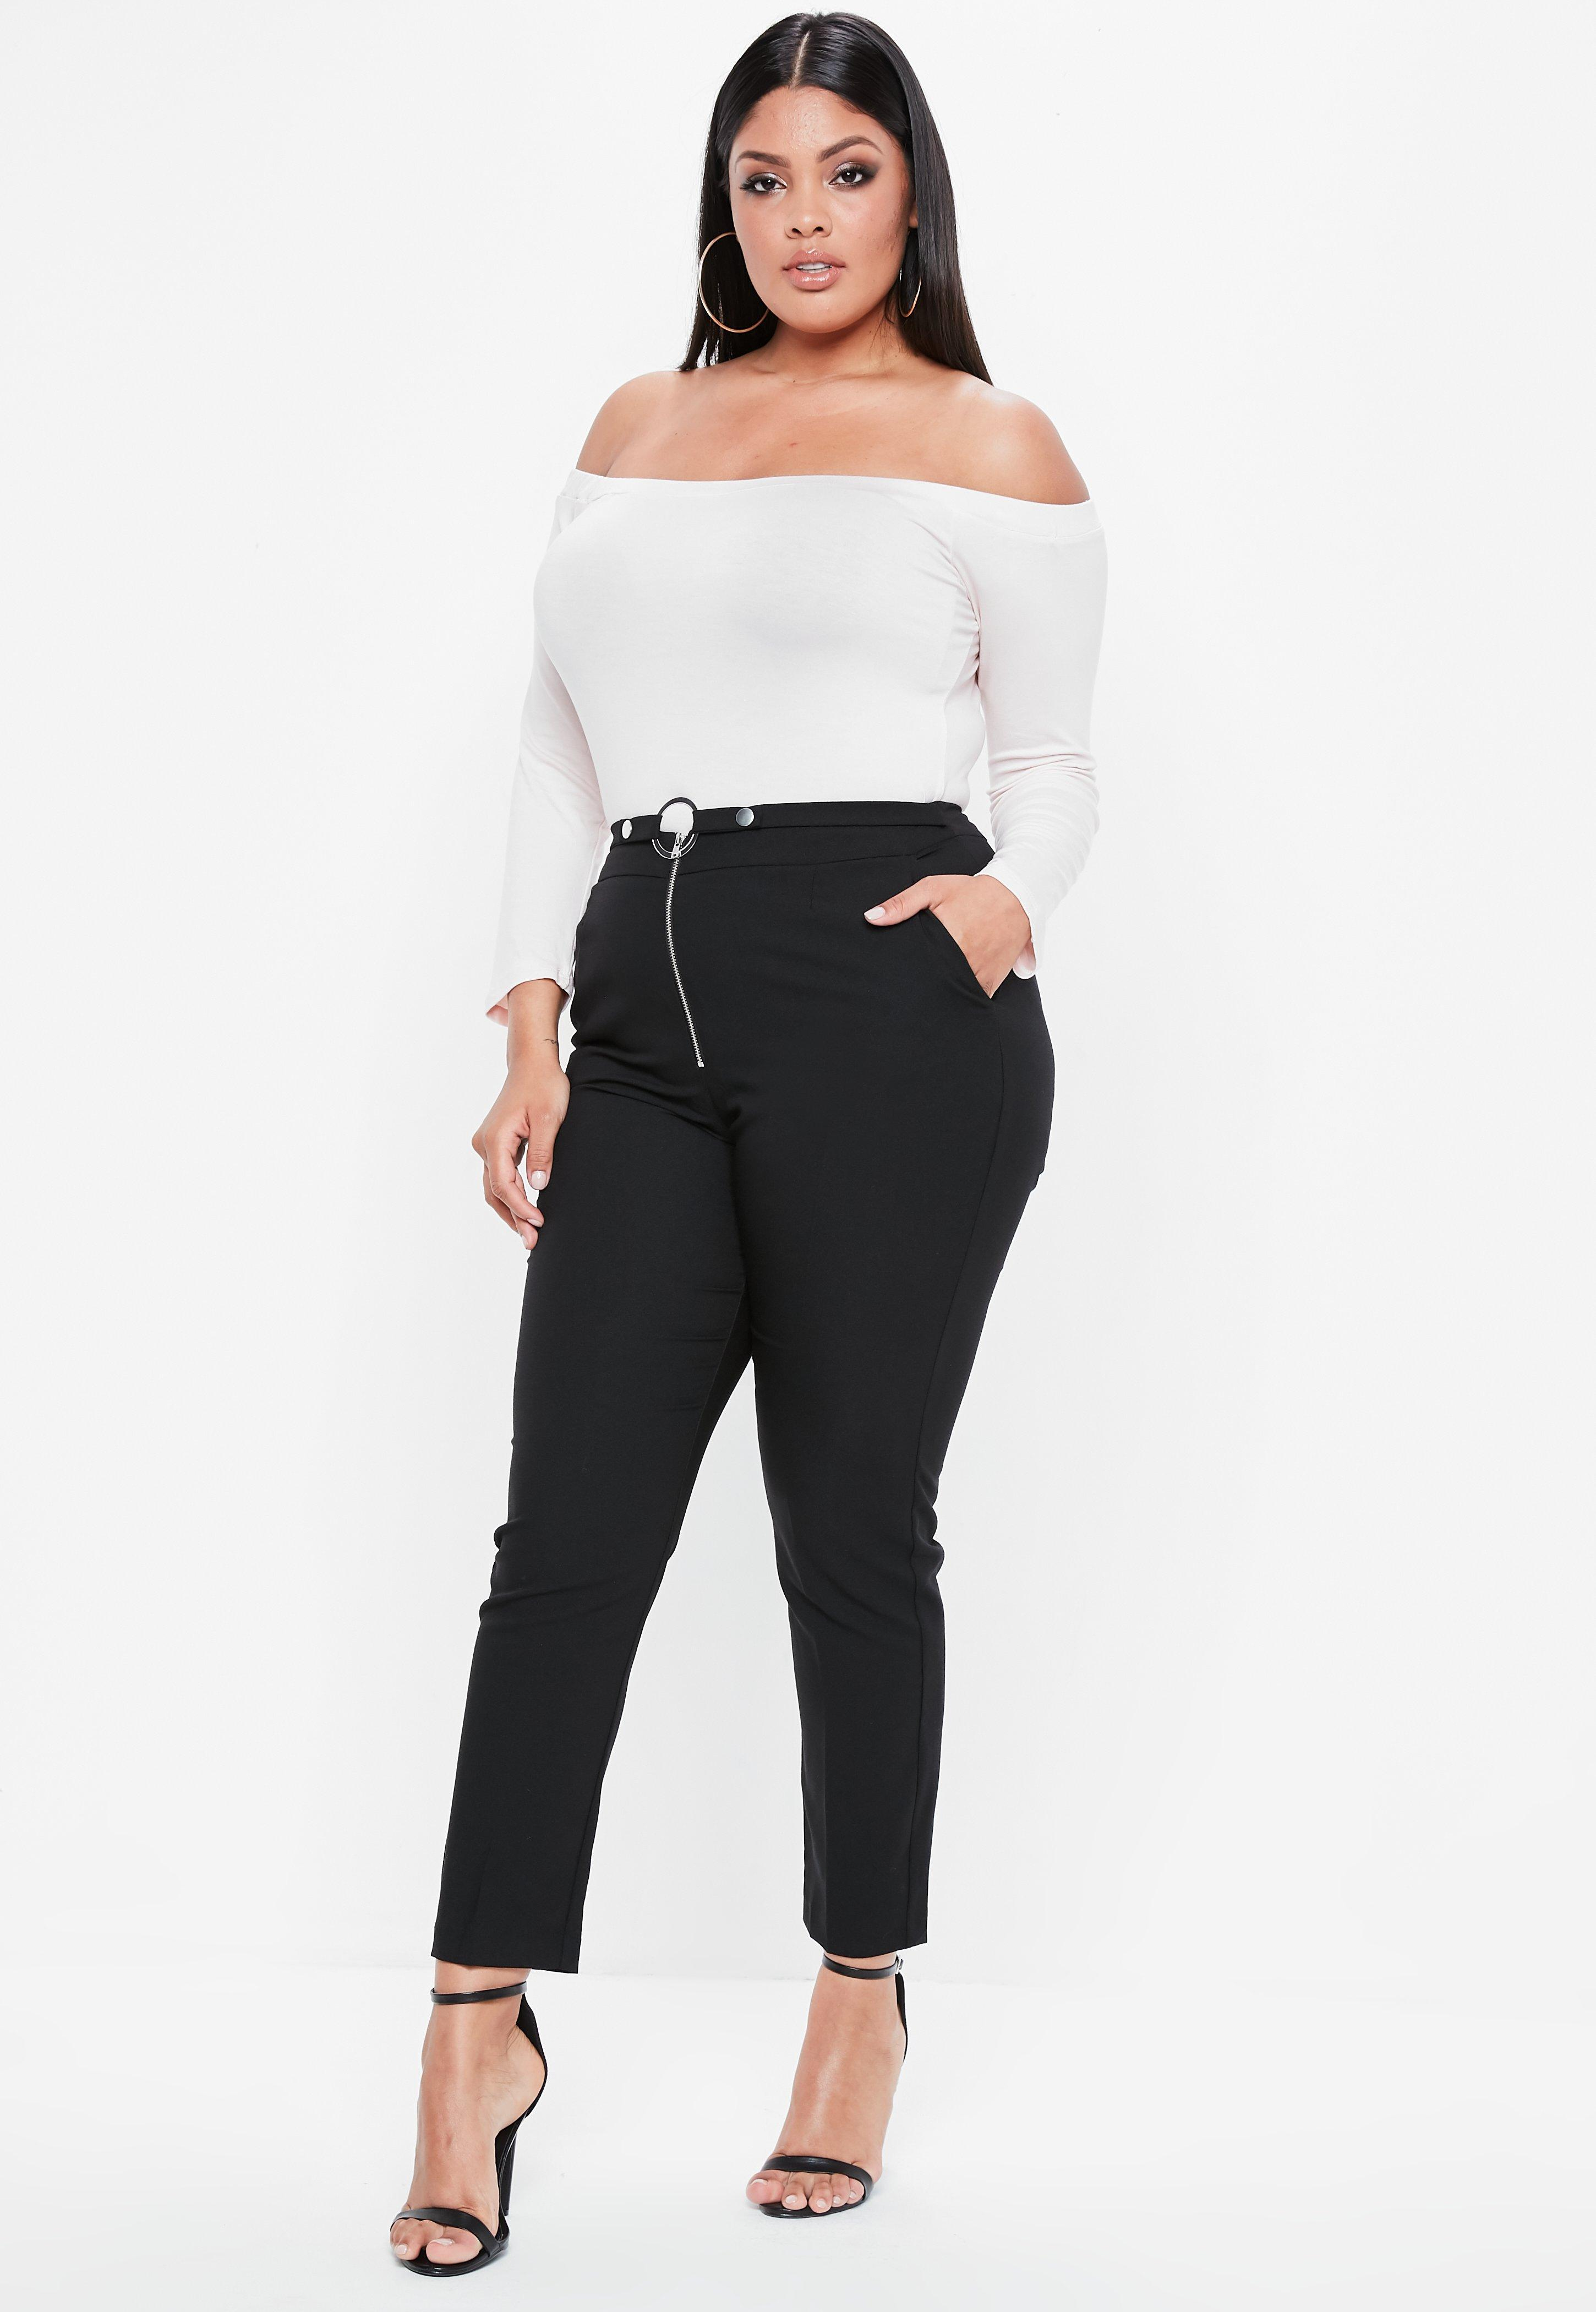 963177181125f Lyst - Missguided Plus Size Black Zip Front Circle Ring Cigarette ...